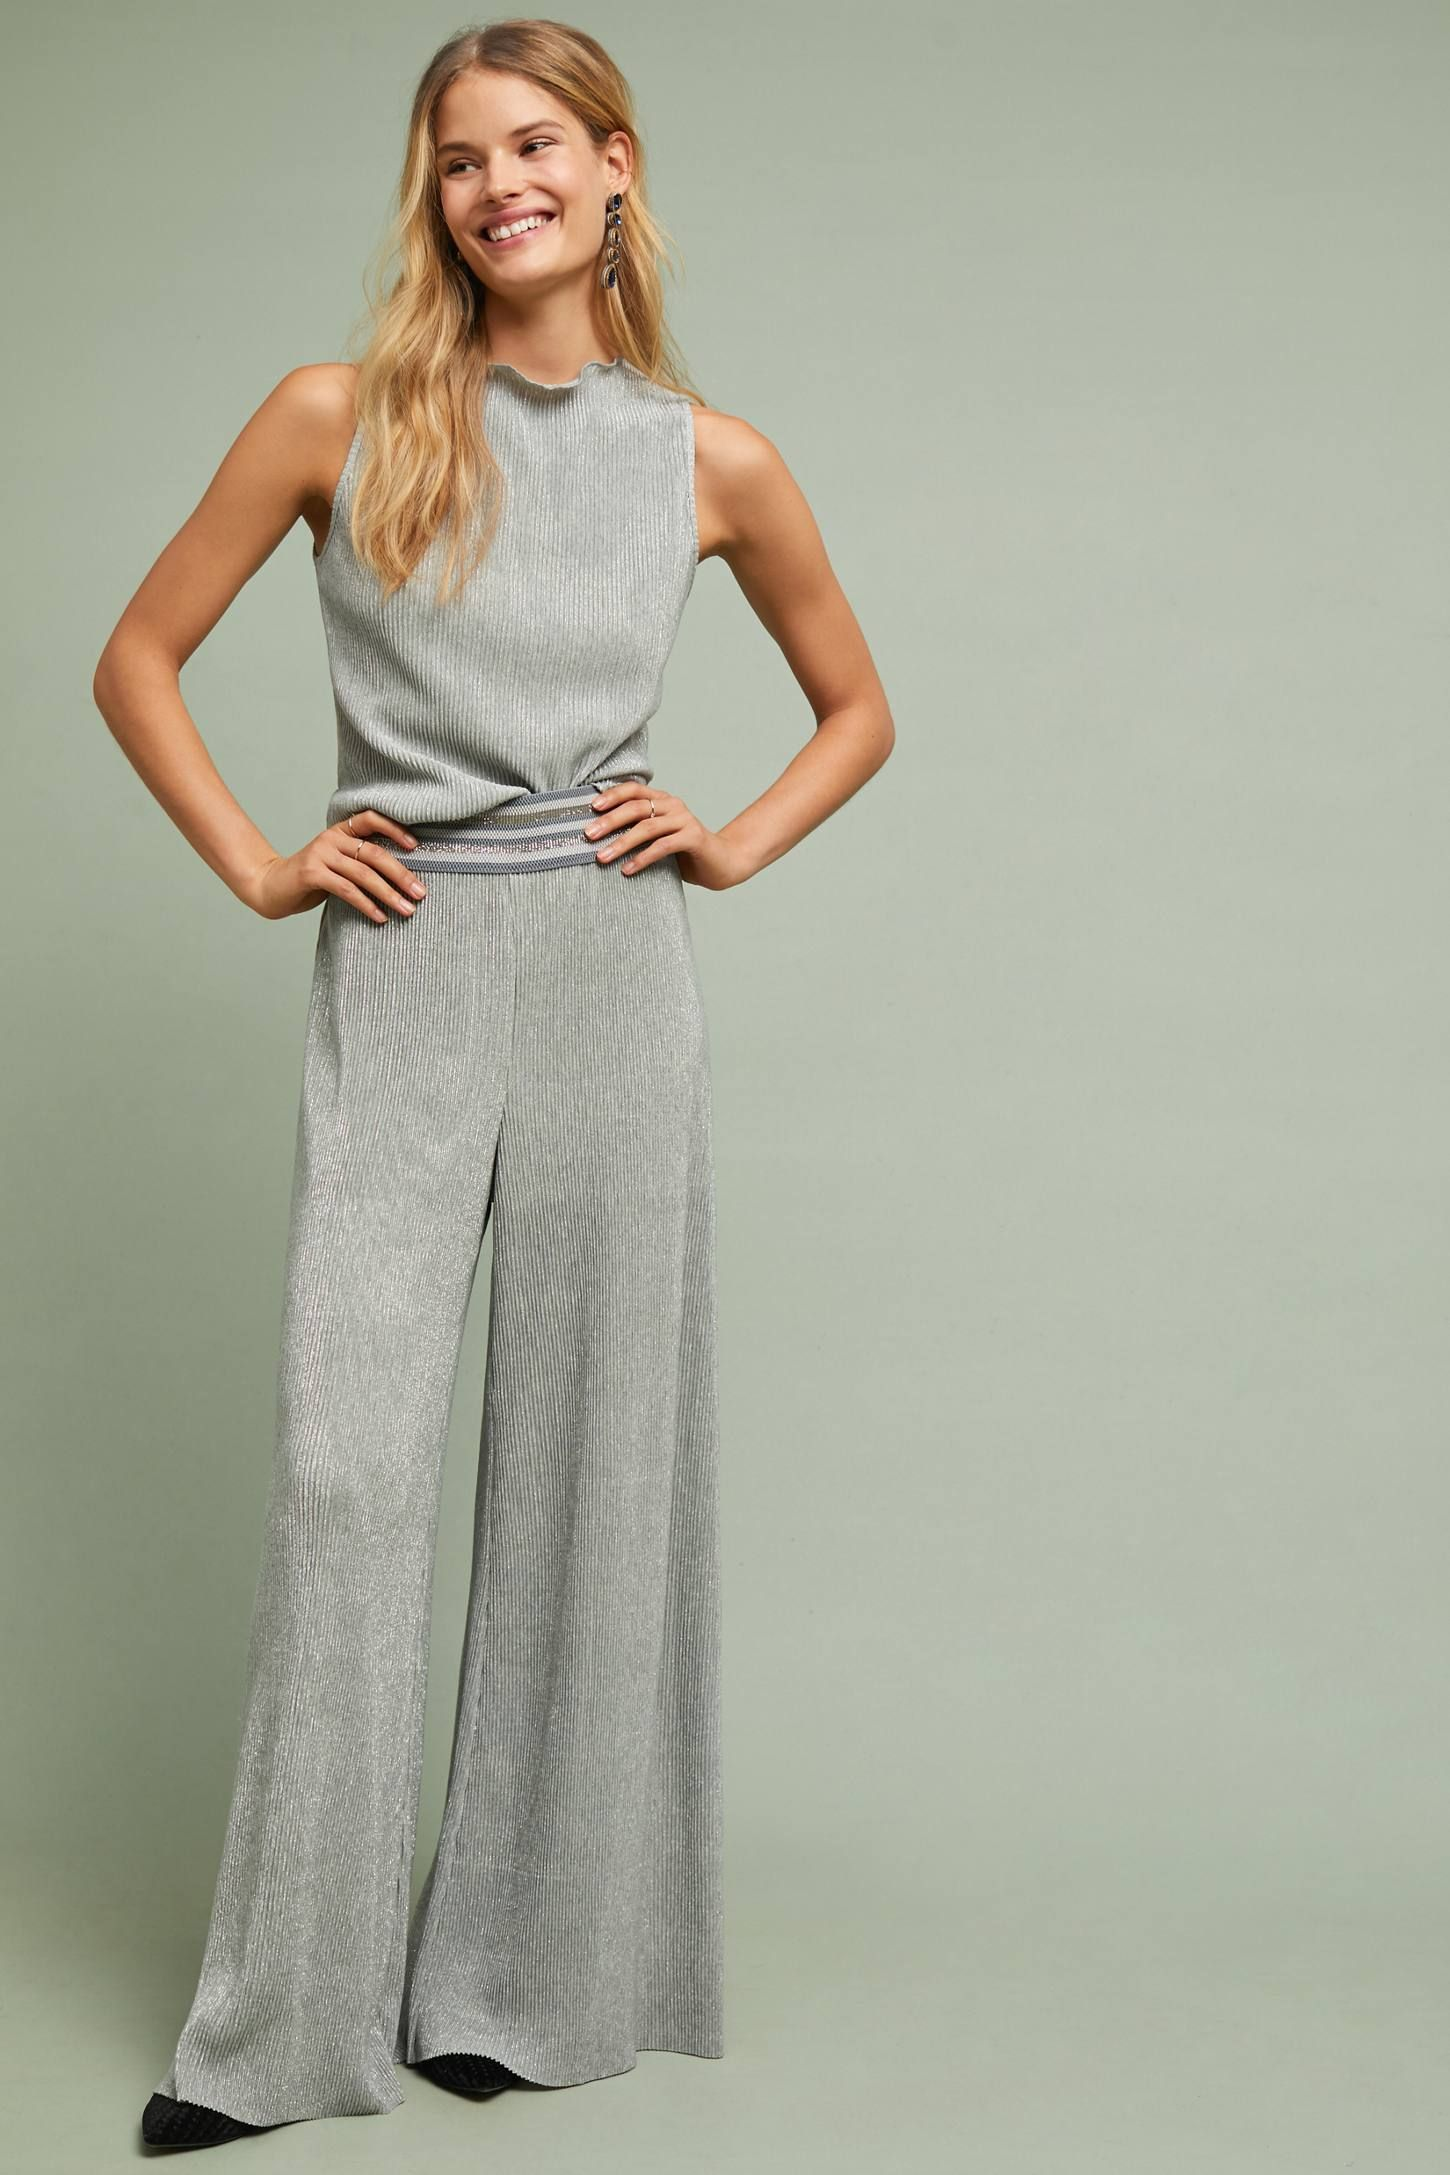 7503b20385bf Crepuscule Pants | Fashion...turn to the left. | Anthropologie ...